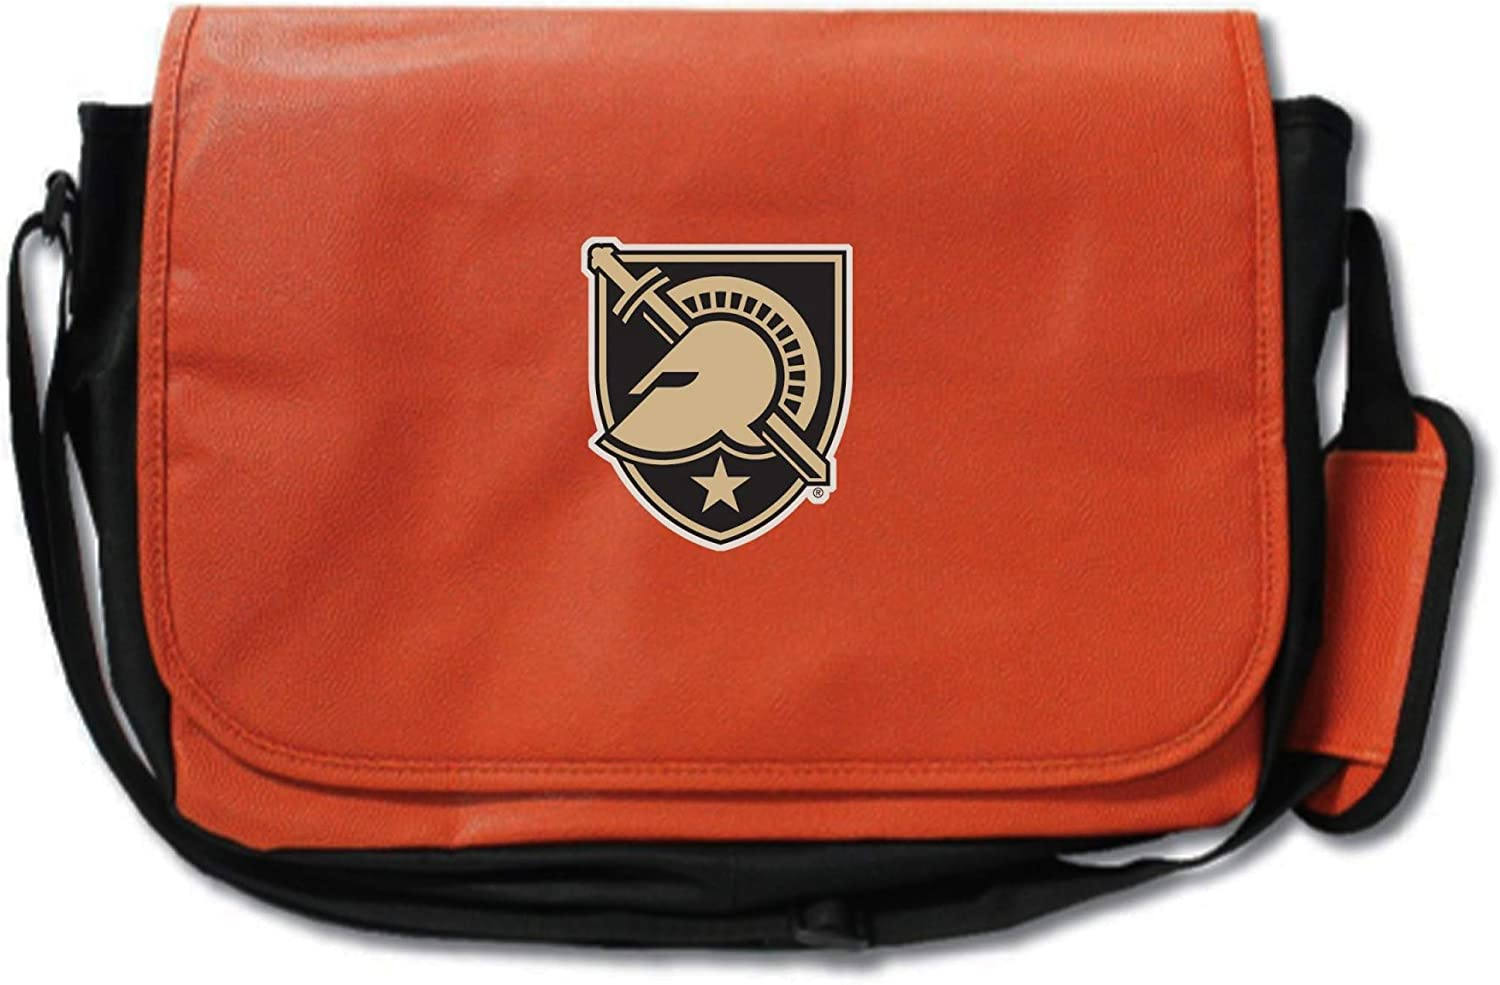 made from actual basketball materials Army Black Knights Basketball Leather Laptop Computer Case Messenger Shoulder Bag Orange